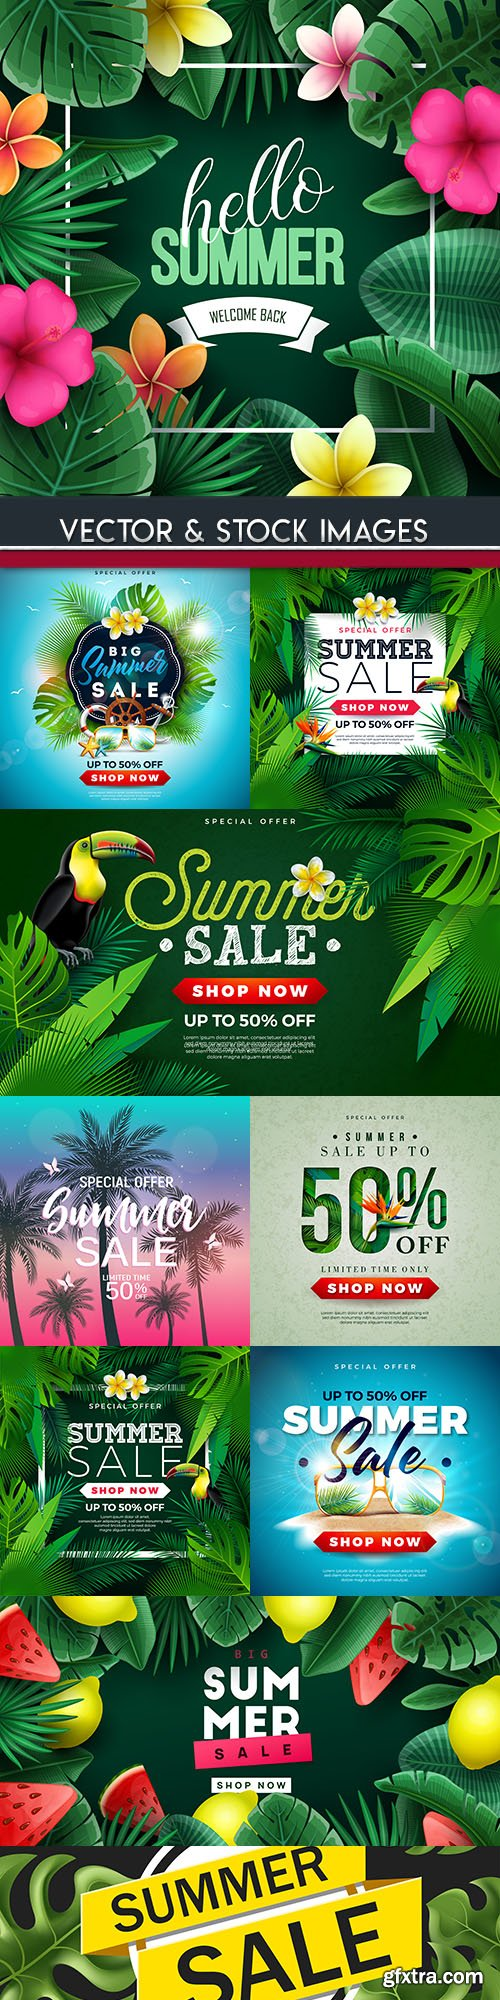 Summer sales special holiday banner illustrations 10